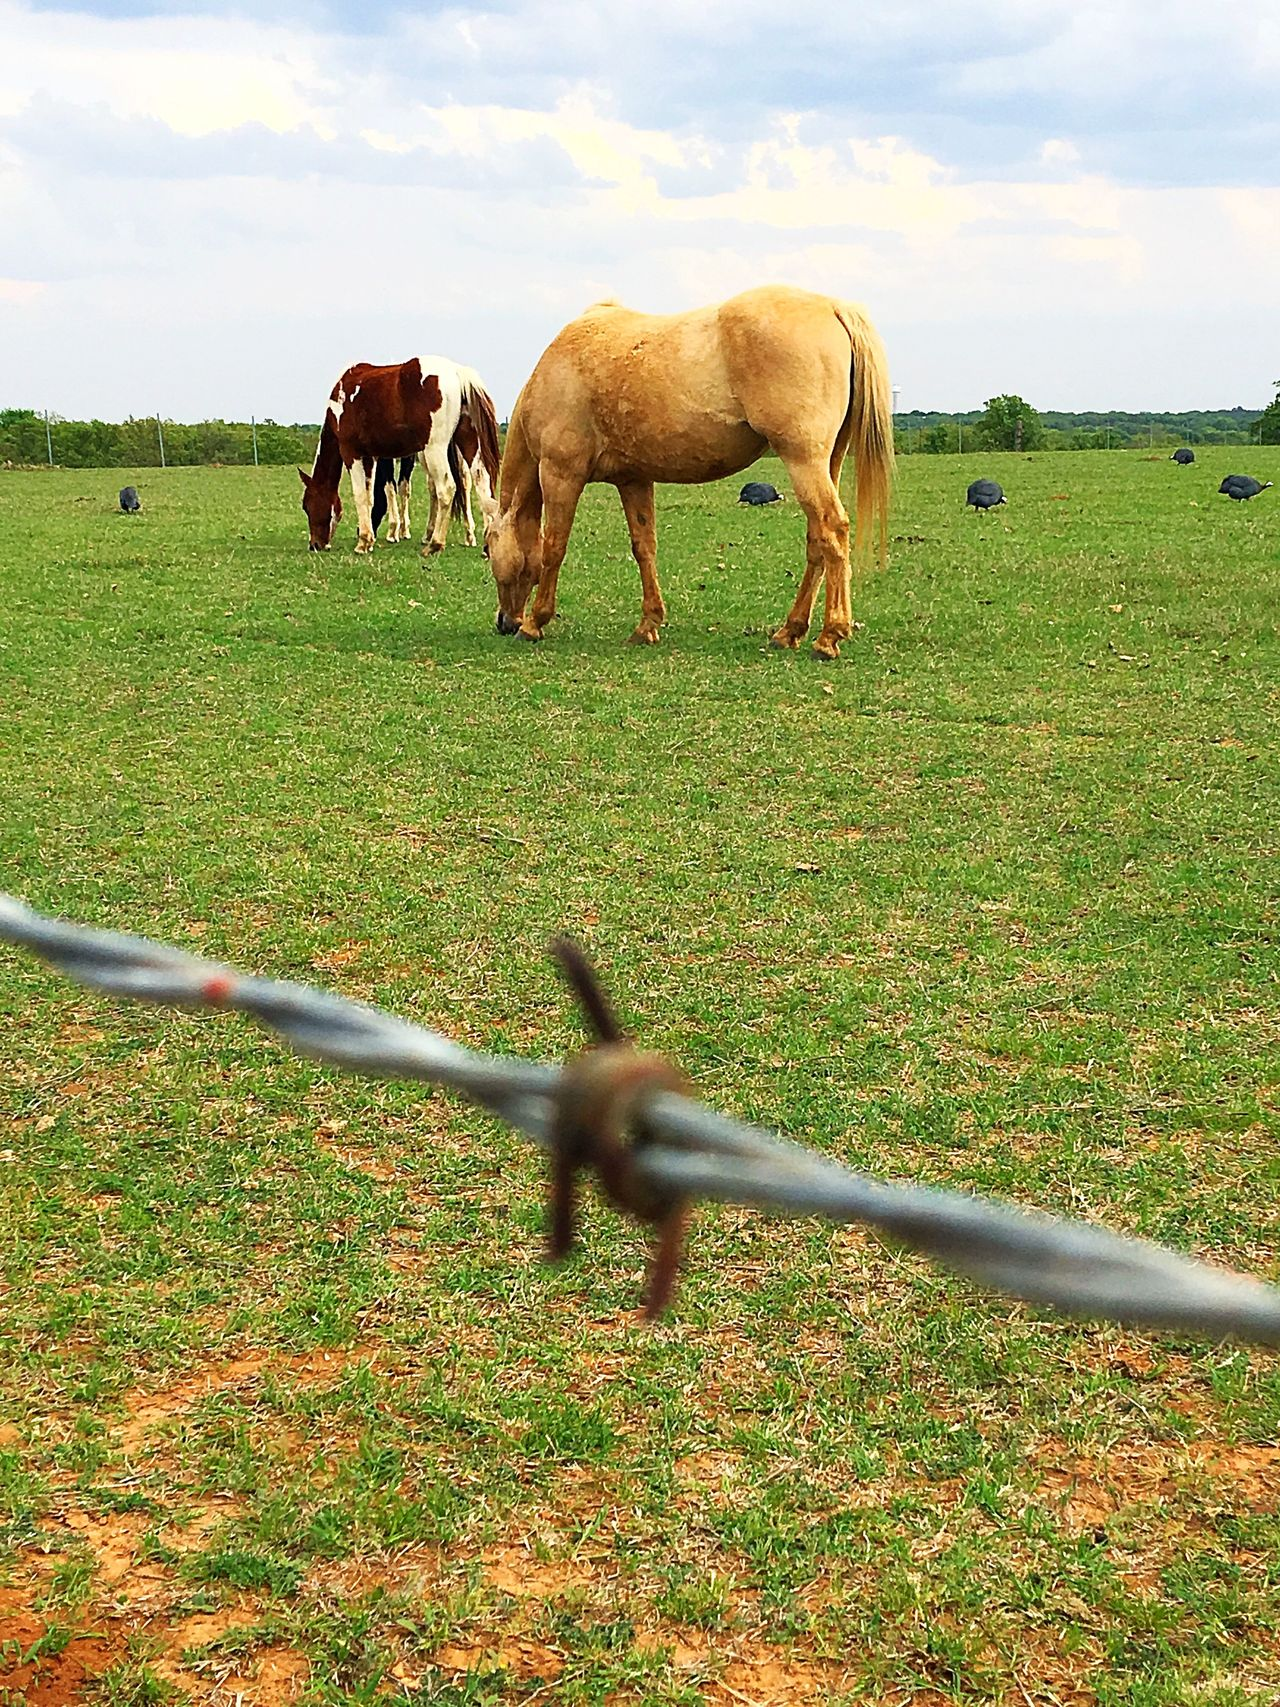 Horses Horse Photography  Barbed Wire Countryside Backroads Guinea Guinea Fowl IPhone IPhoneography Pasture Fence Grass Safety Domestic Animals Sky Field Protection Animal Themes Mammal Day Standing Livestock No People Rural Scene Outdoors Landscape Paddock Nature